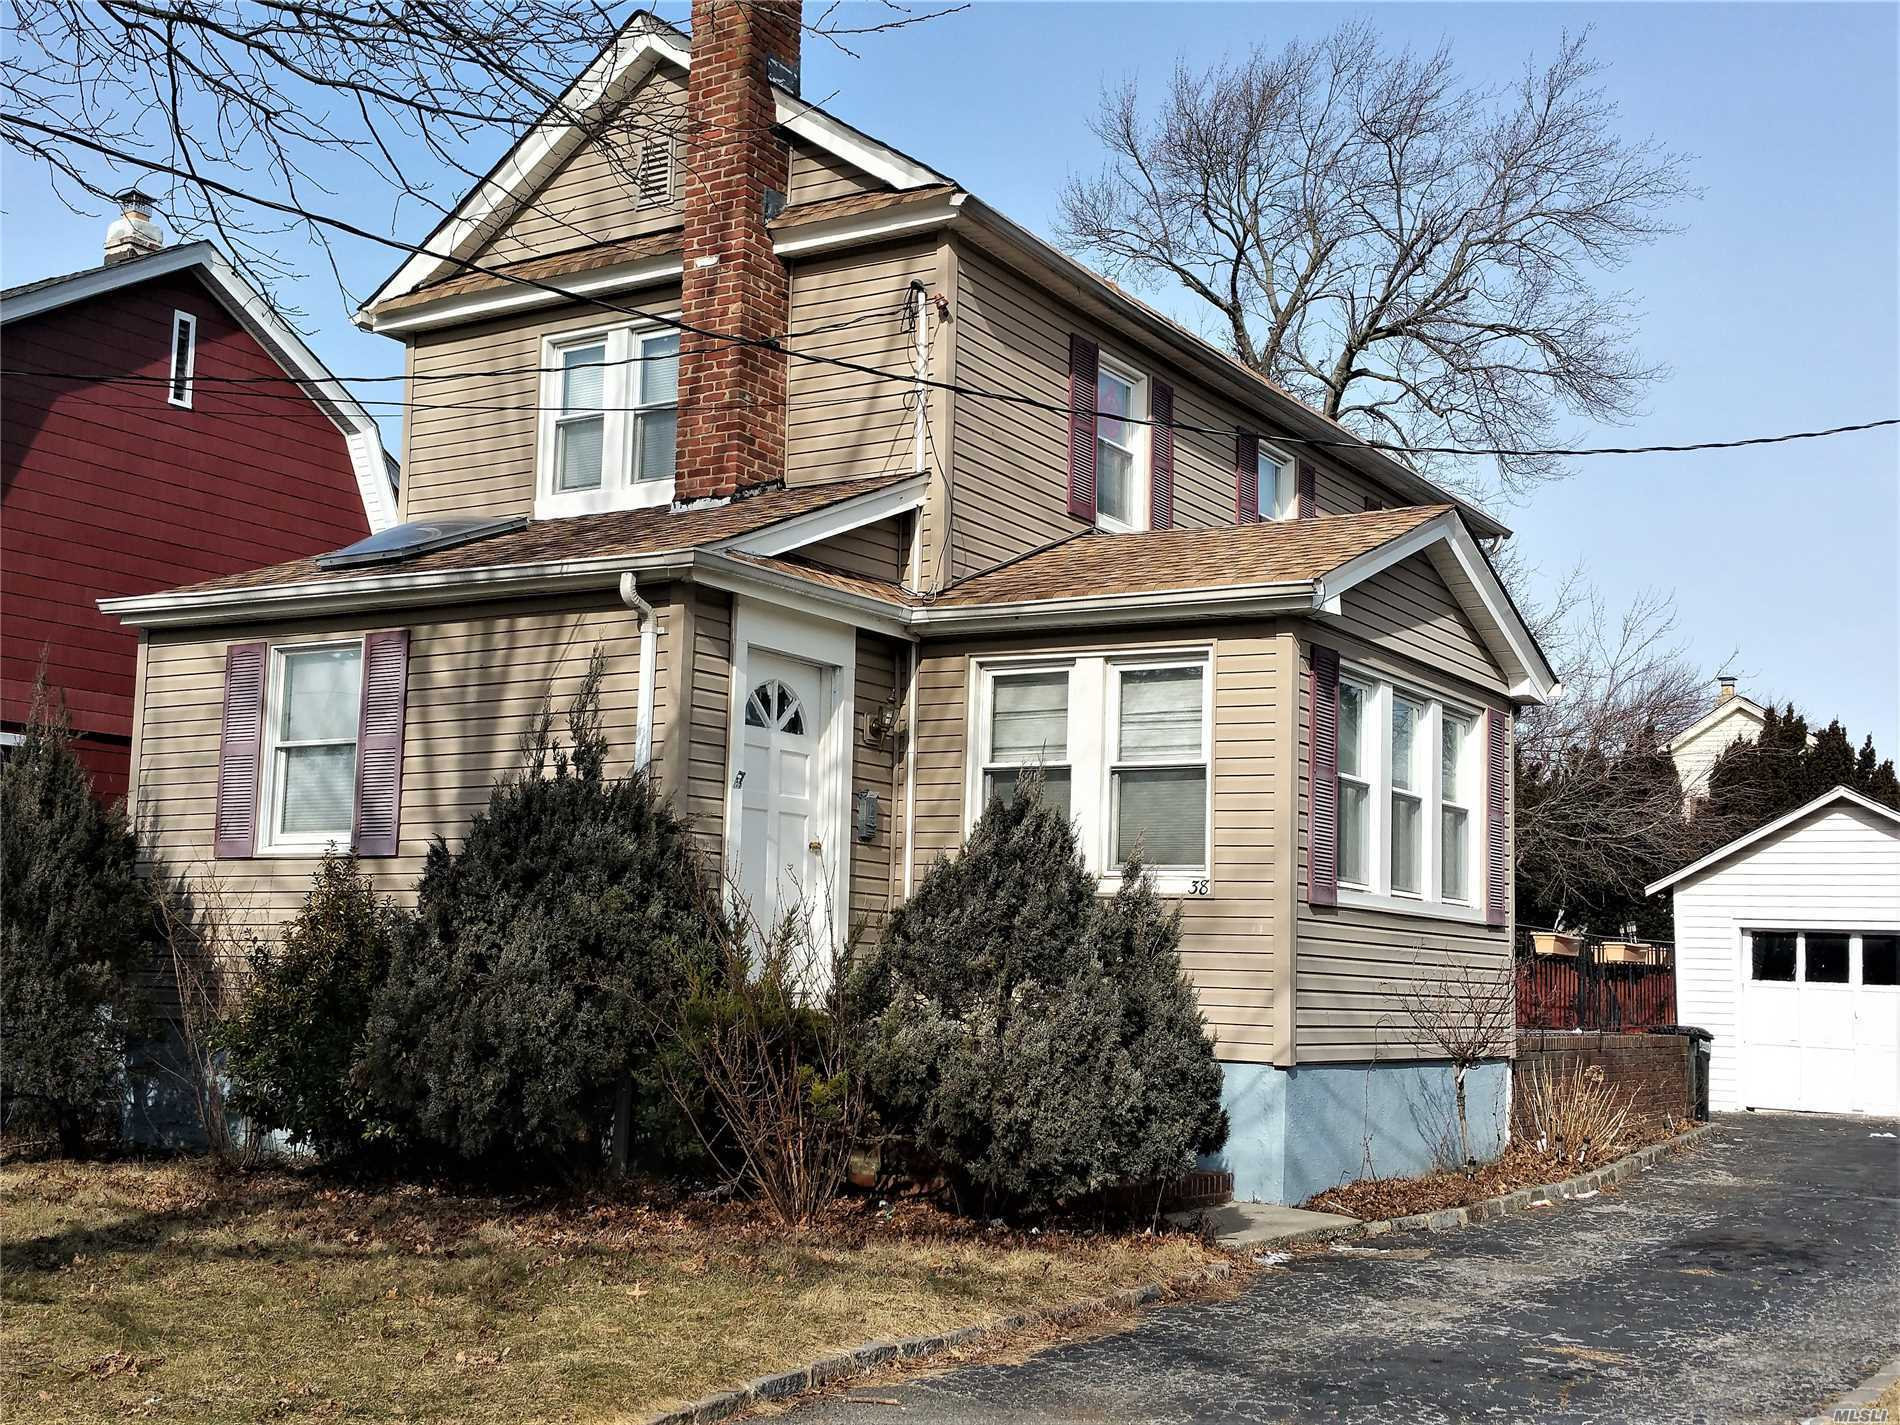 Sunlight Filled Colonial Only 5 Minute Walk From Train Station & Stores! Perfect Layout Has 1st Floor Large Living Room With Fireplace, Large Formal Dining Room, Eat-In Kitchen With Gas Stove, New Half Bath. 2nd Floor Has 3 Bedrooms And New Large Full Bathroom With Jacuzzi. New Hot Water Heater, Washer/Dryer & Roof. Low Taxes. This Is A Fantastic Buy!